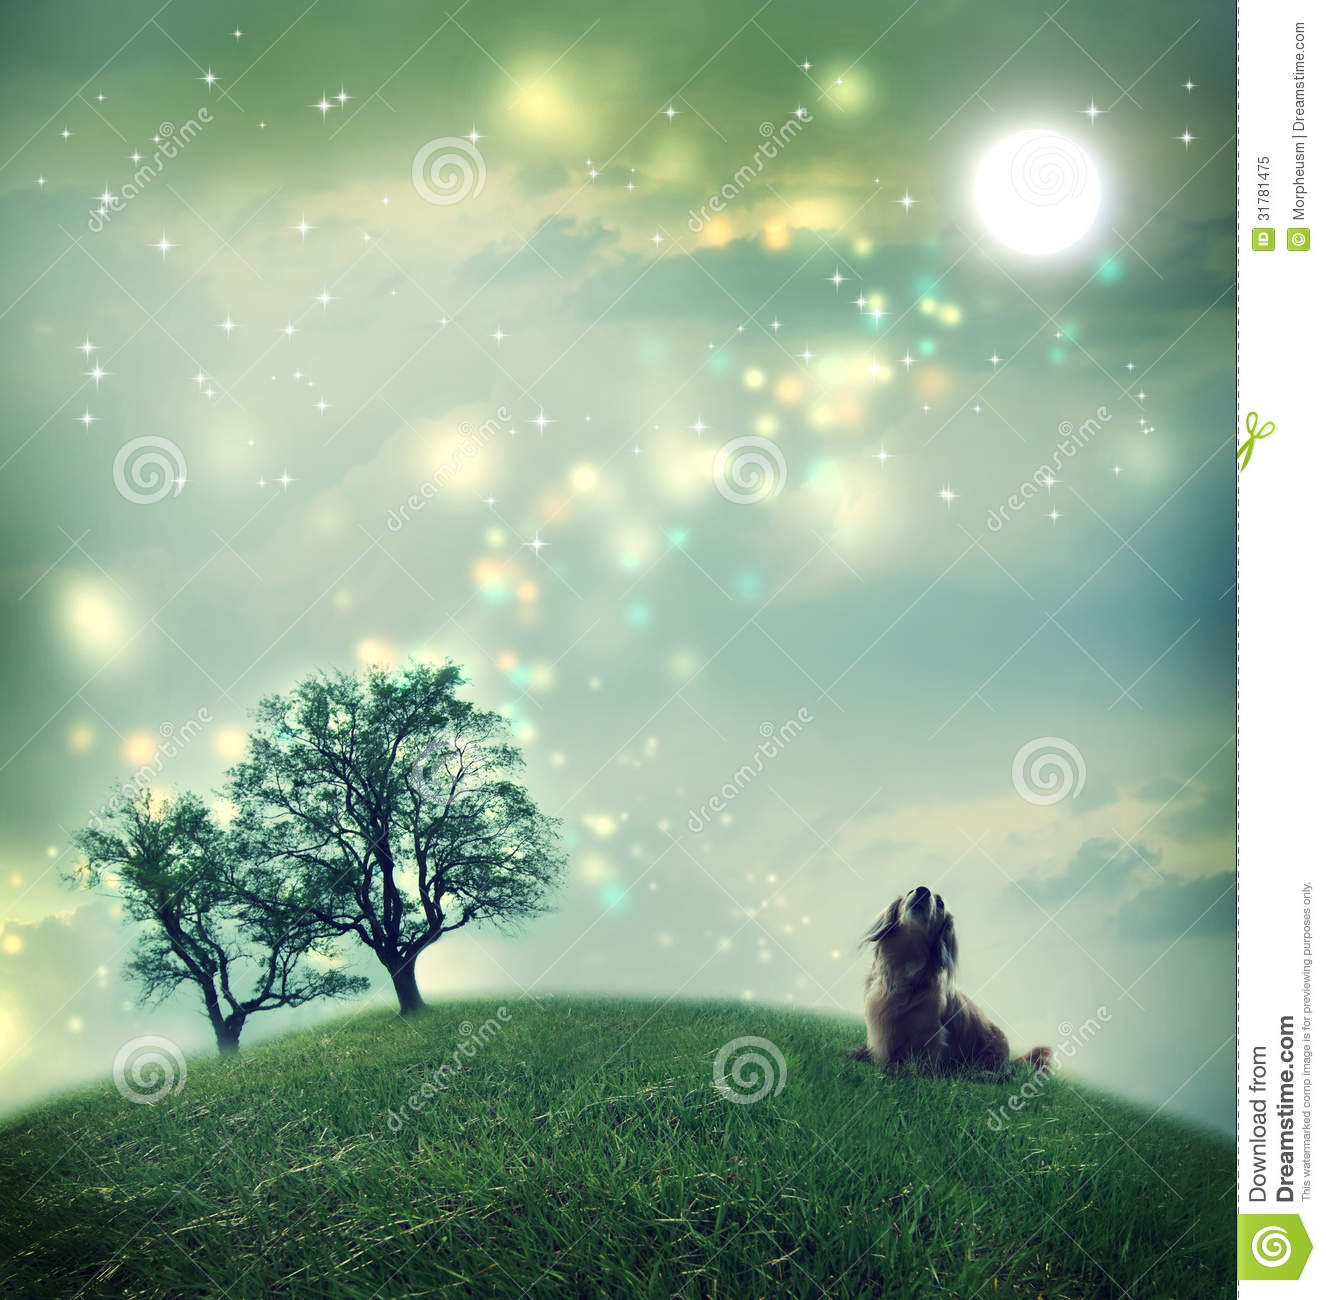 Dachshund Dog In A Magical Landscape Royalty Free Stock